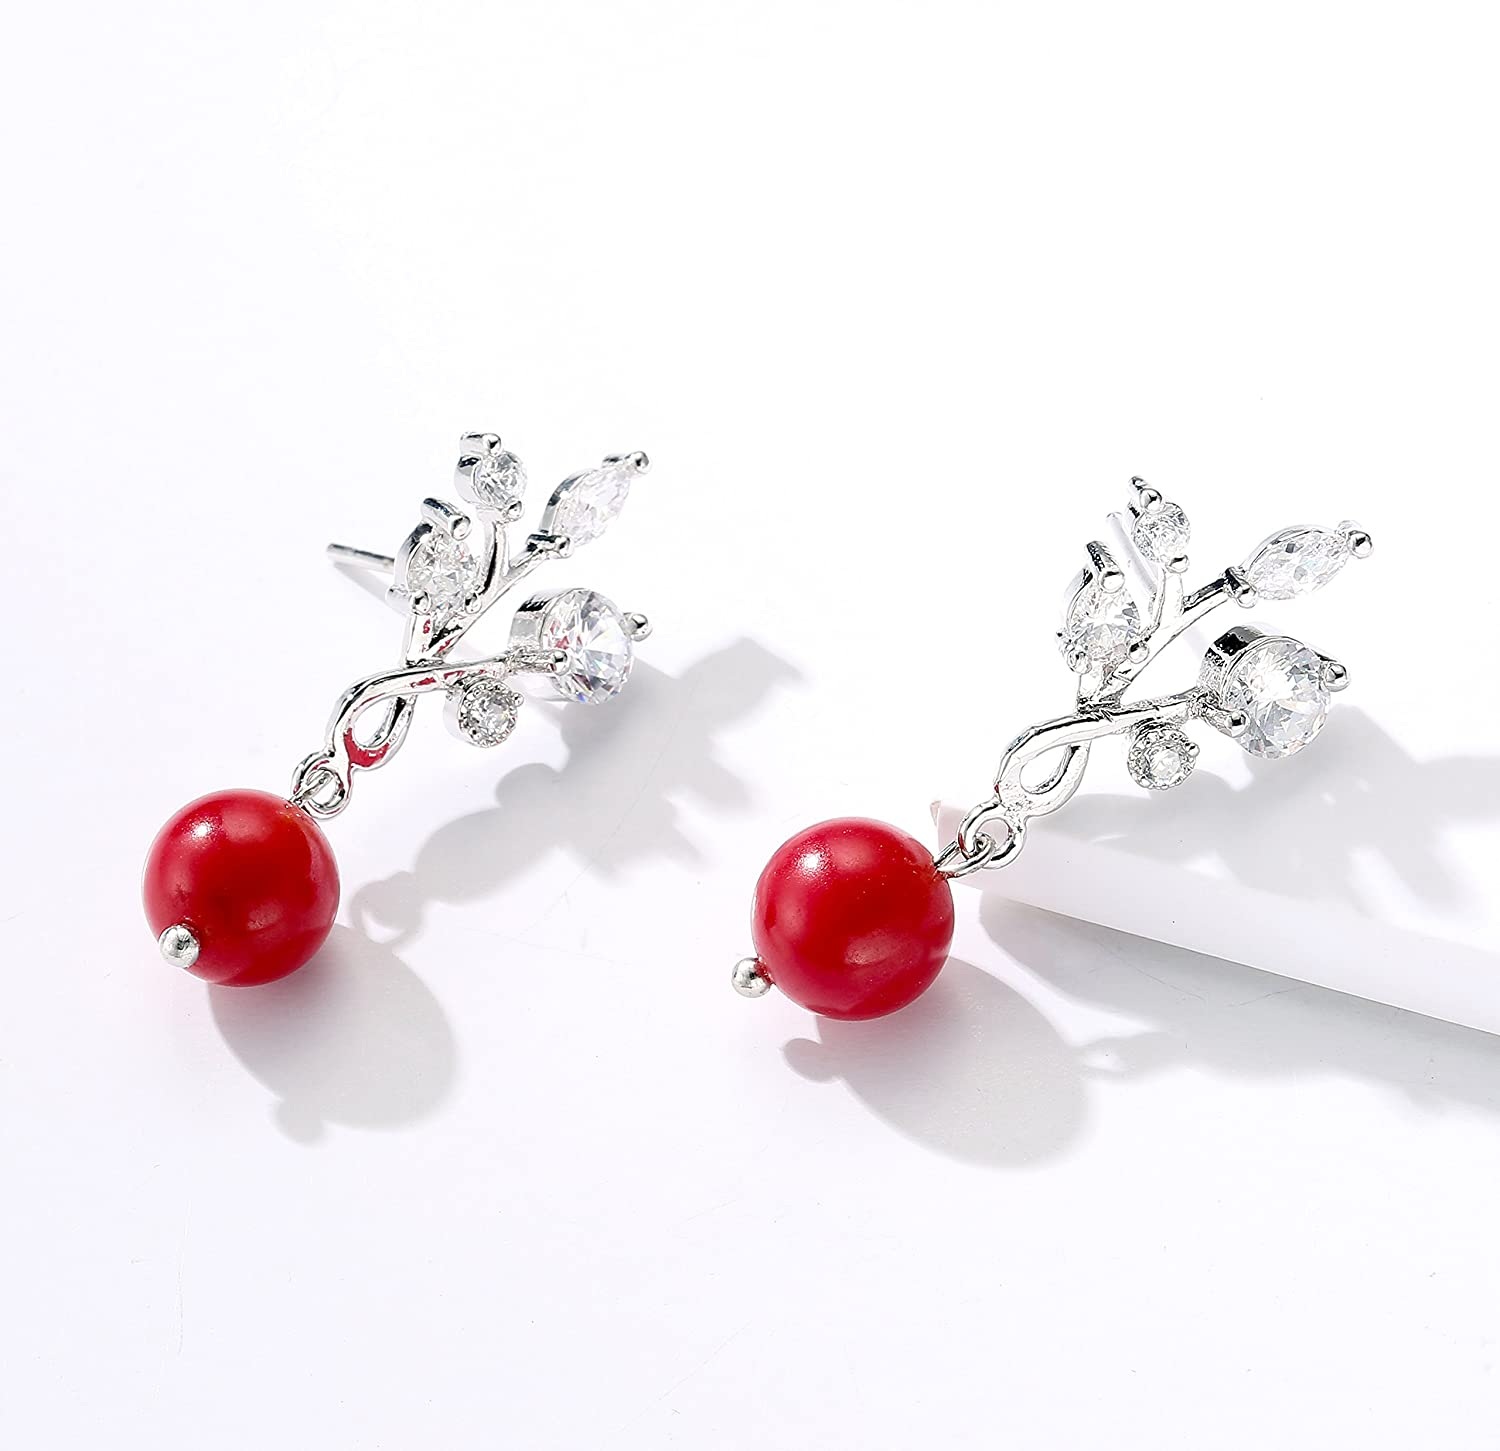 CZ Leaves Stud Earrings with Coral Bead Drop